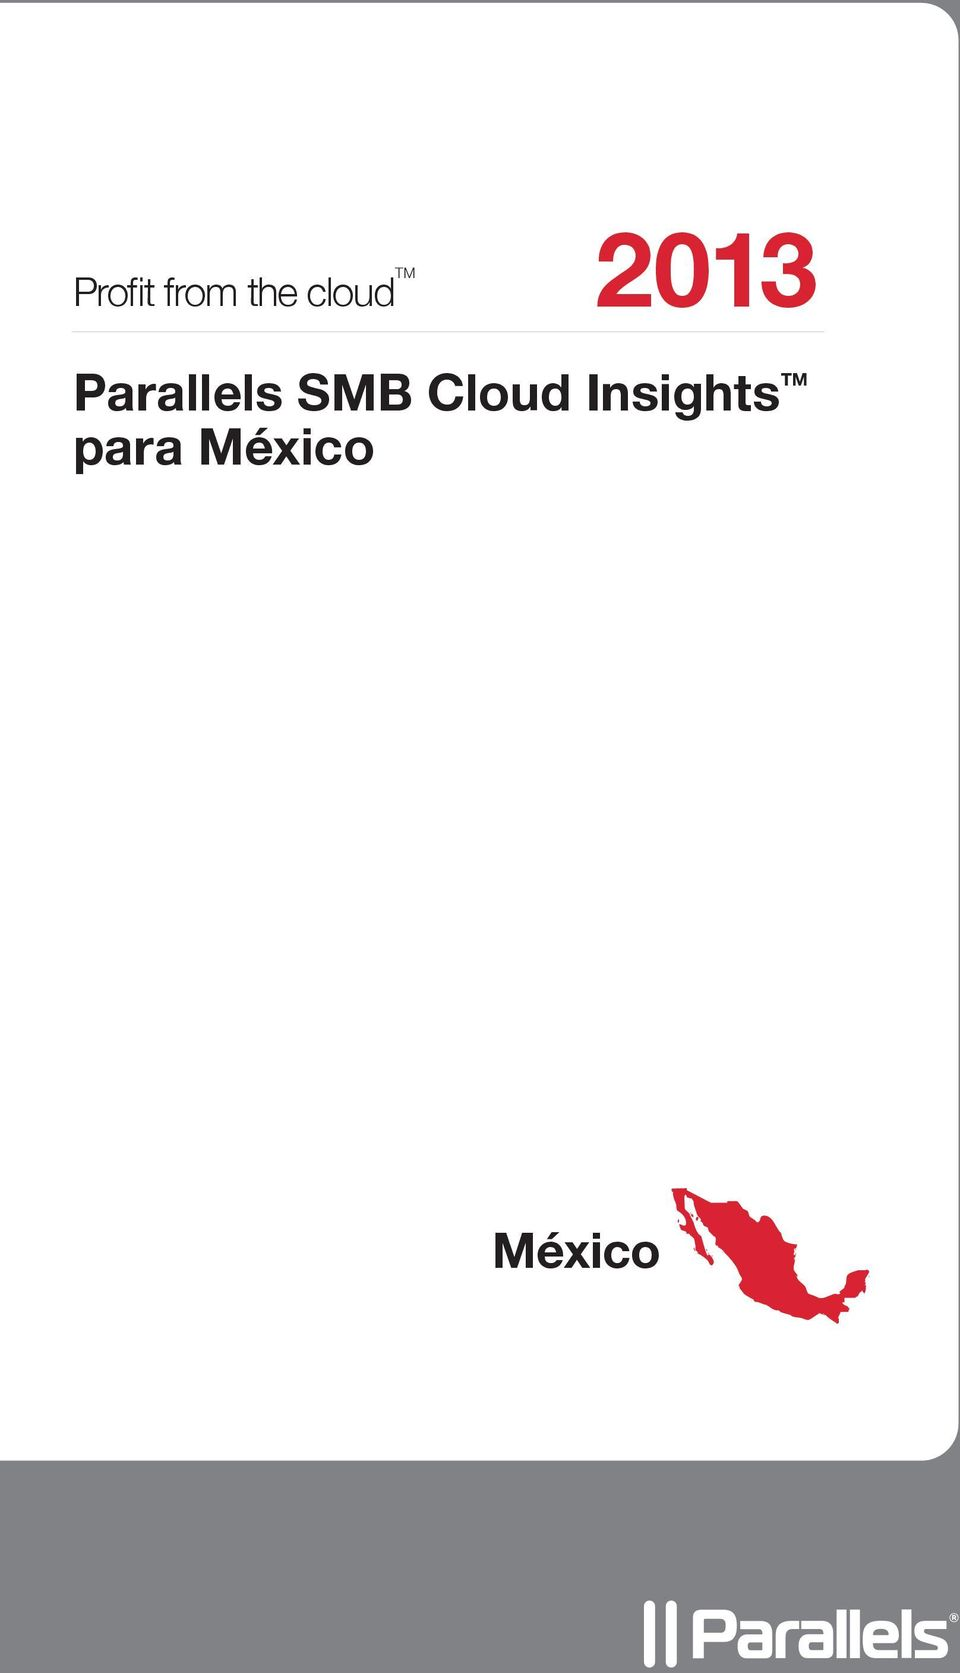 Parallels SMB Cloud